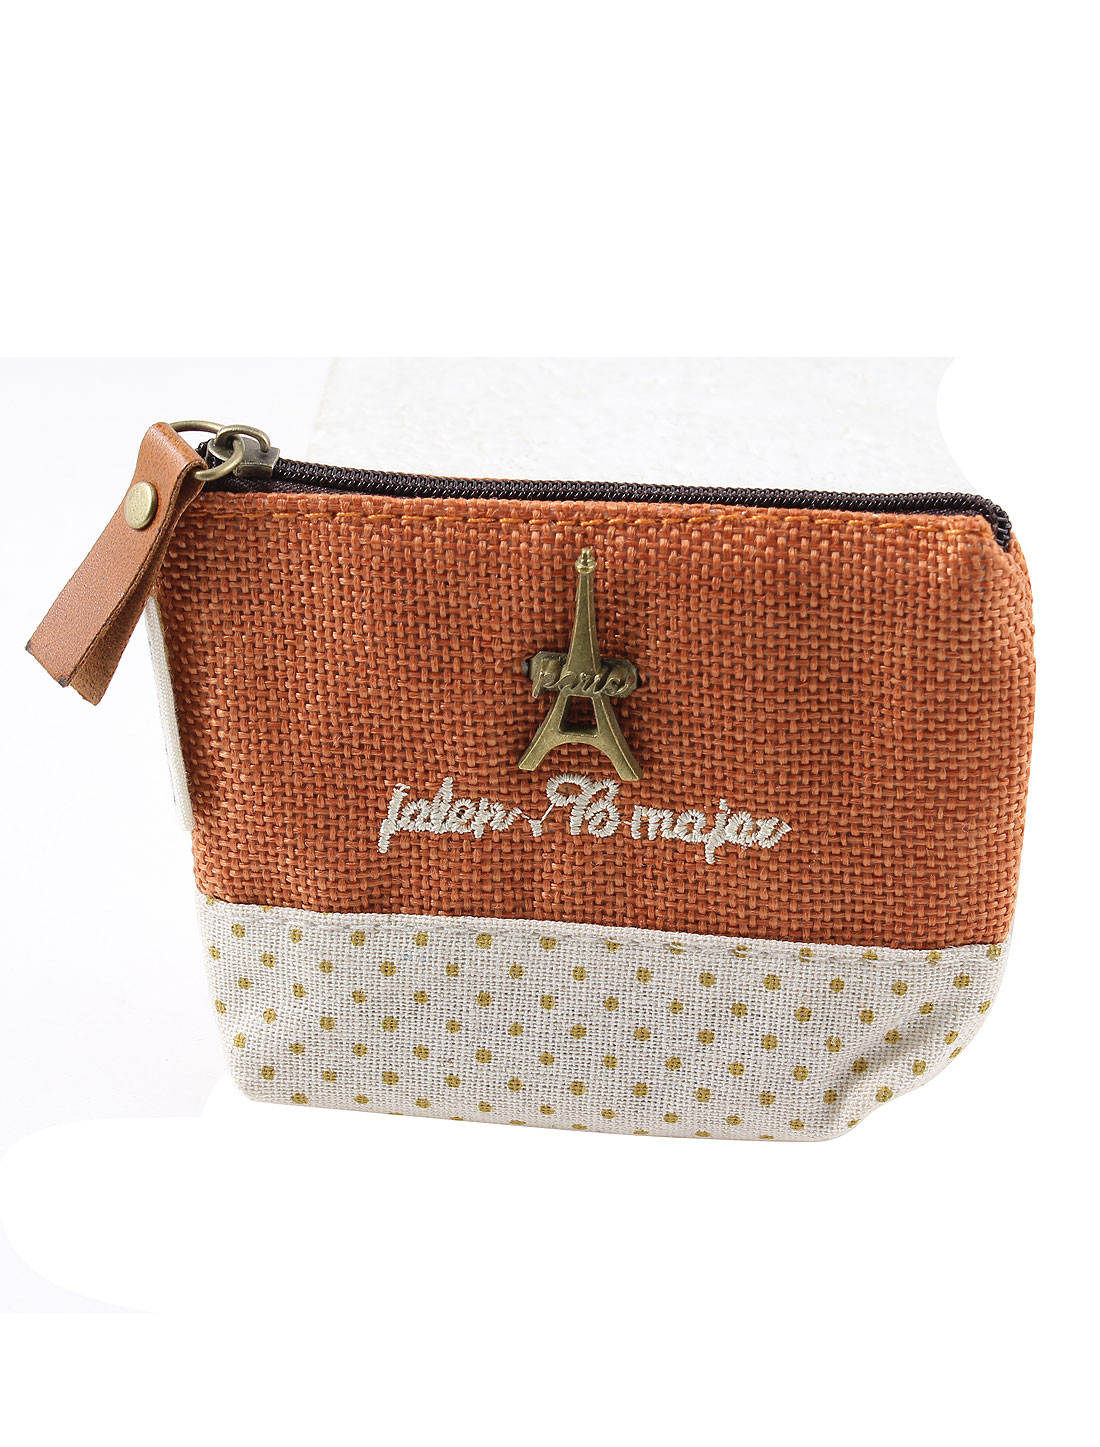 Dots Pattern Zipper Closure Metal Eiffel Tower Accent Cash Coin Money Key Credit Card Purse Bag Brick Red for Ladies